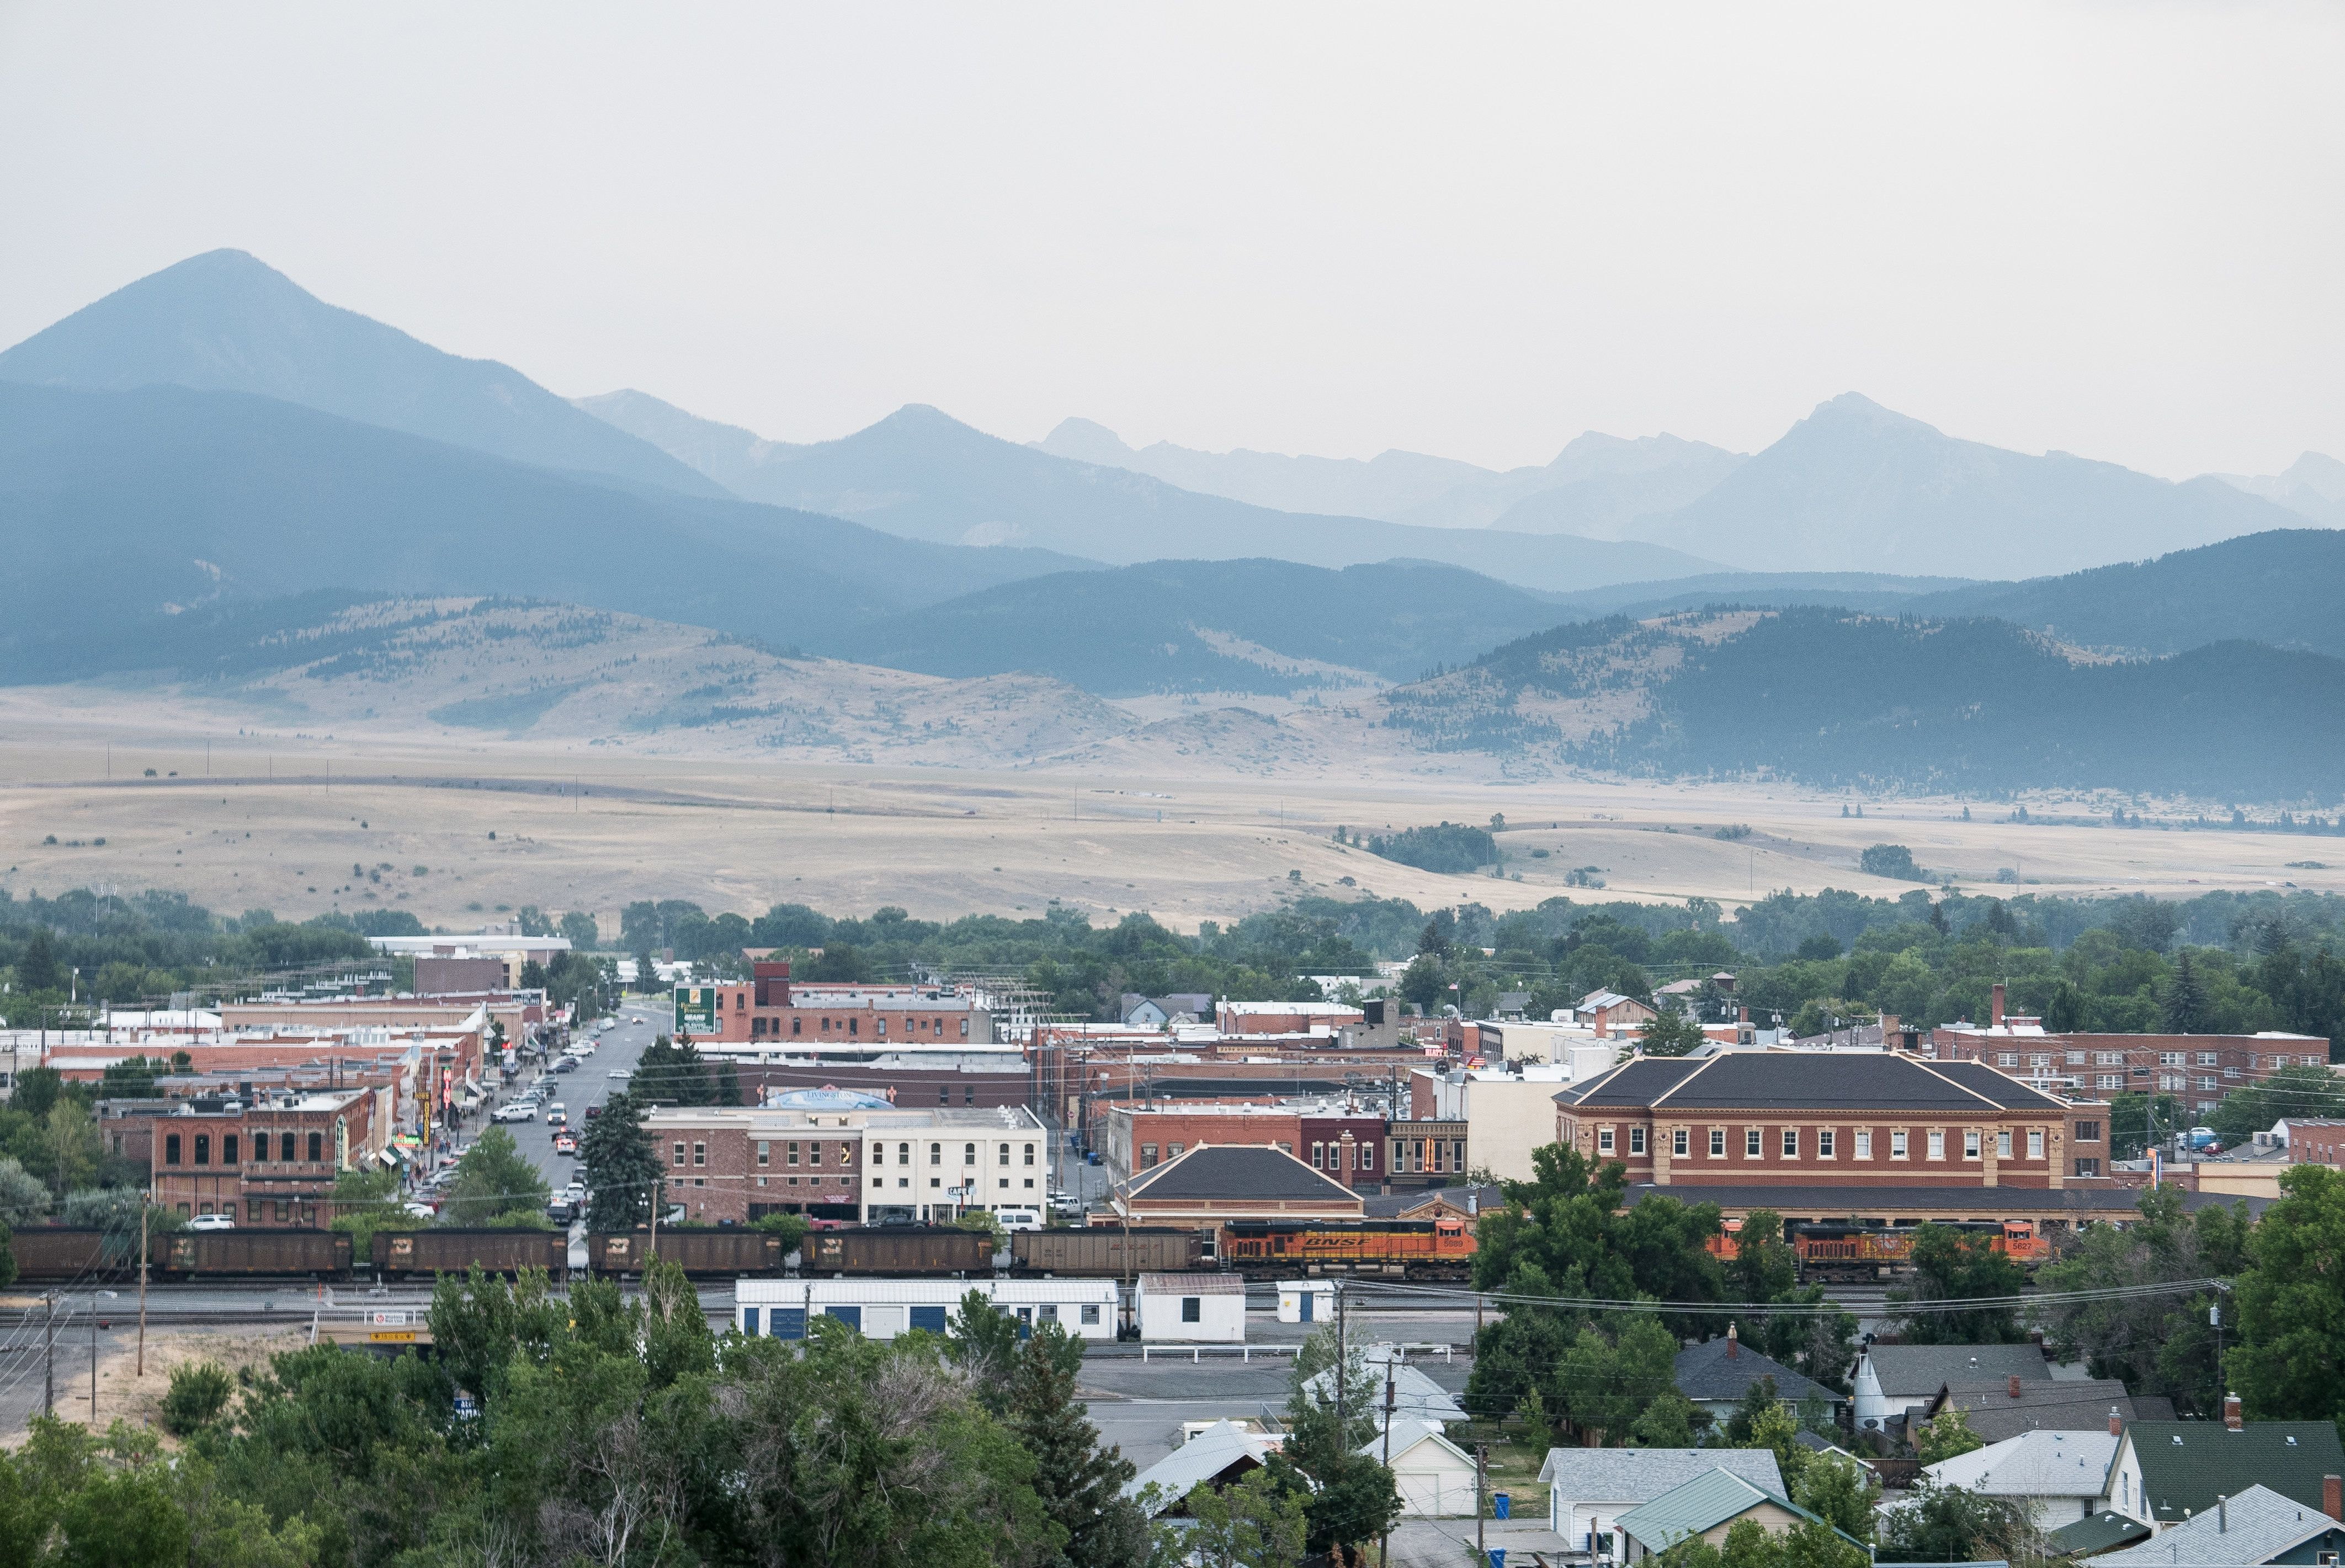 The Railroad Put This Montana Town On The Map. But It Left Behind A Toxic Legacy.